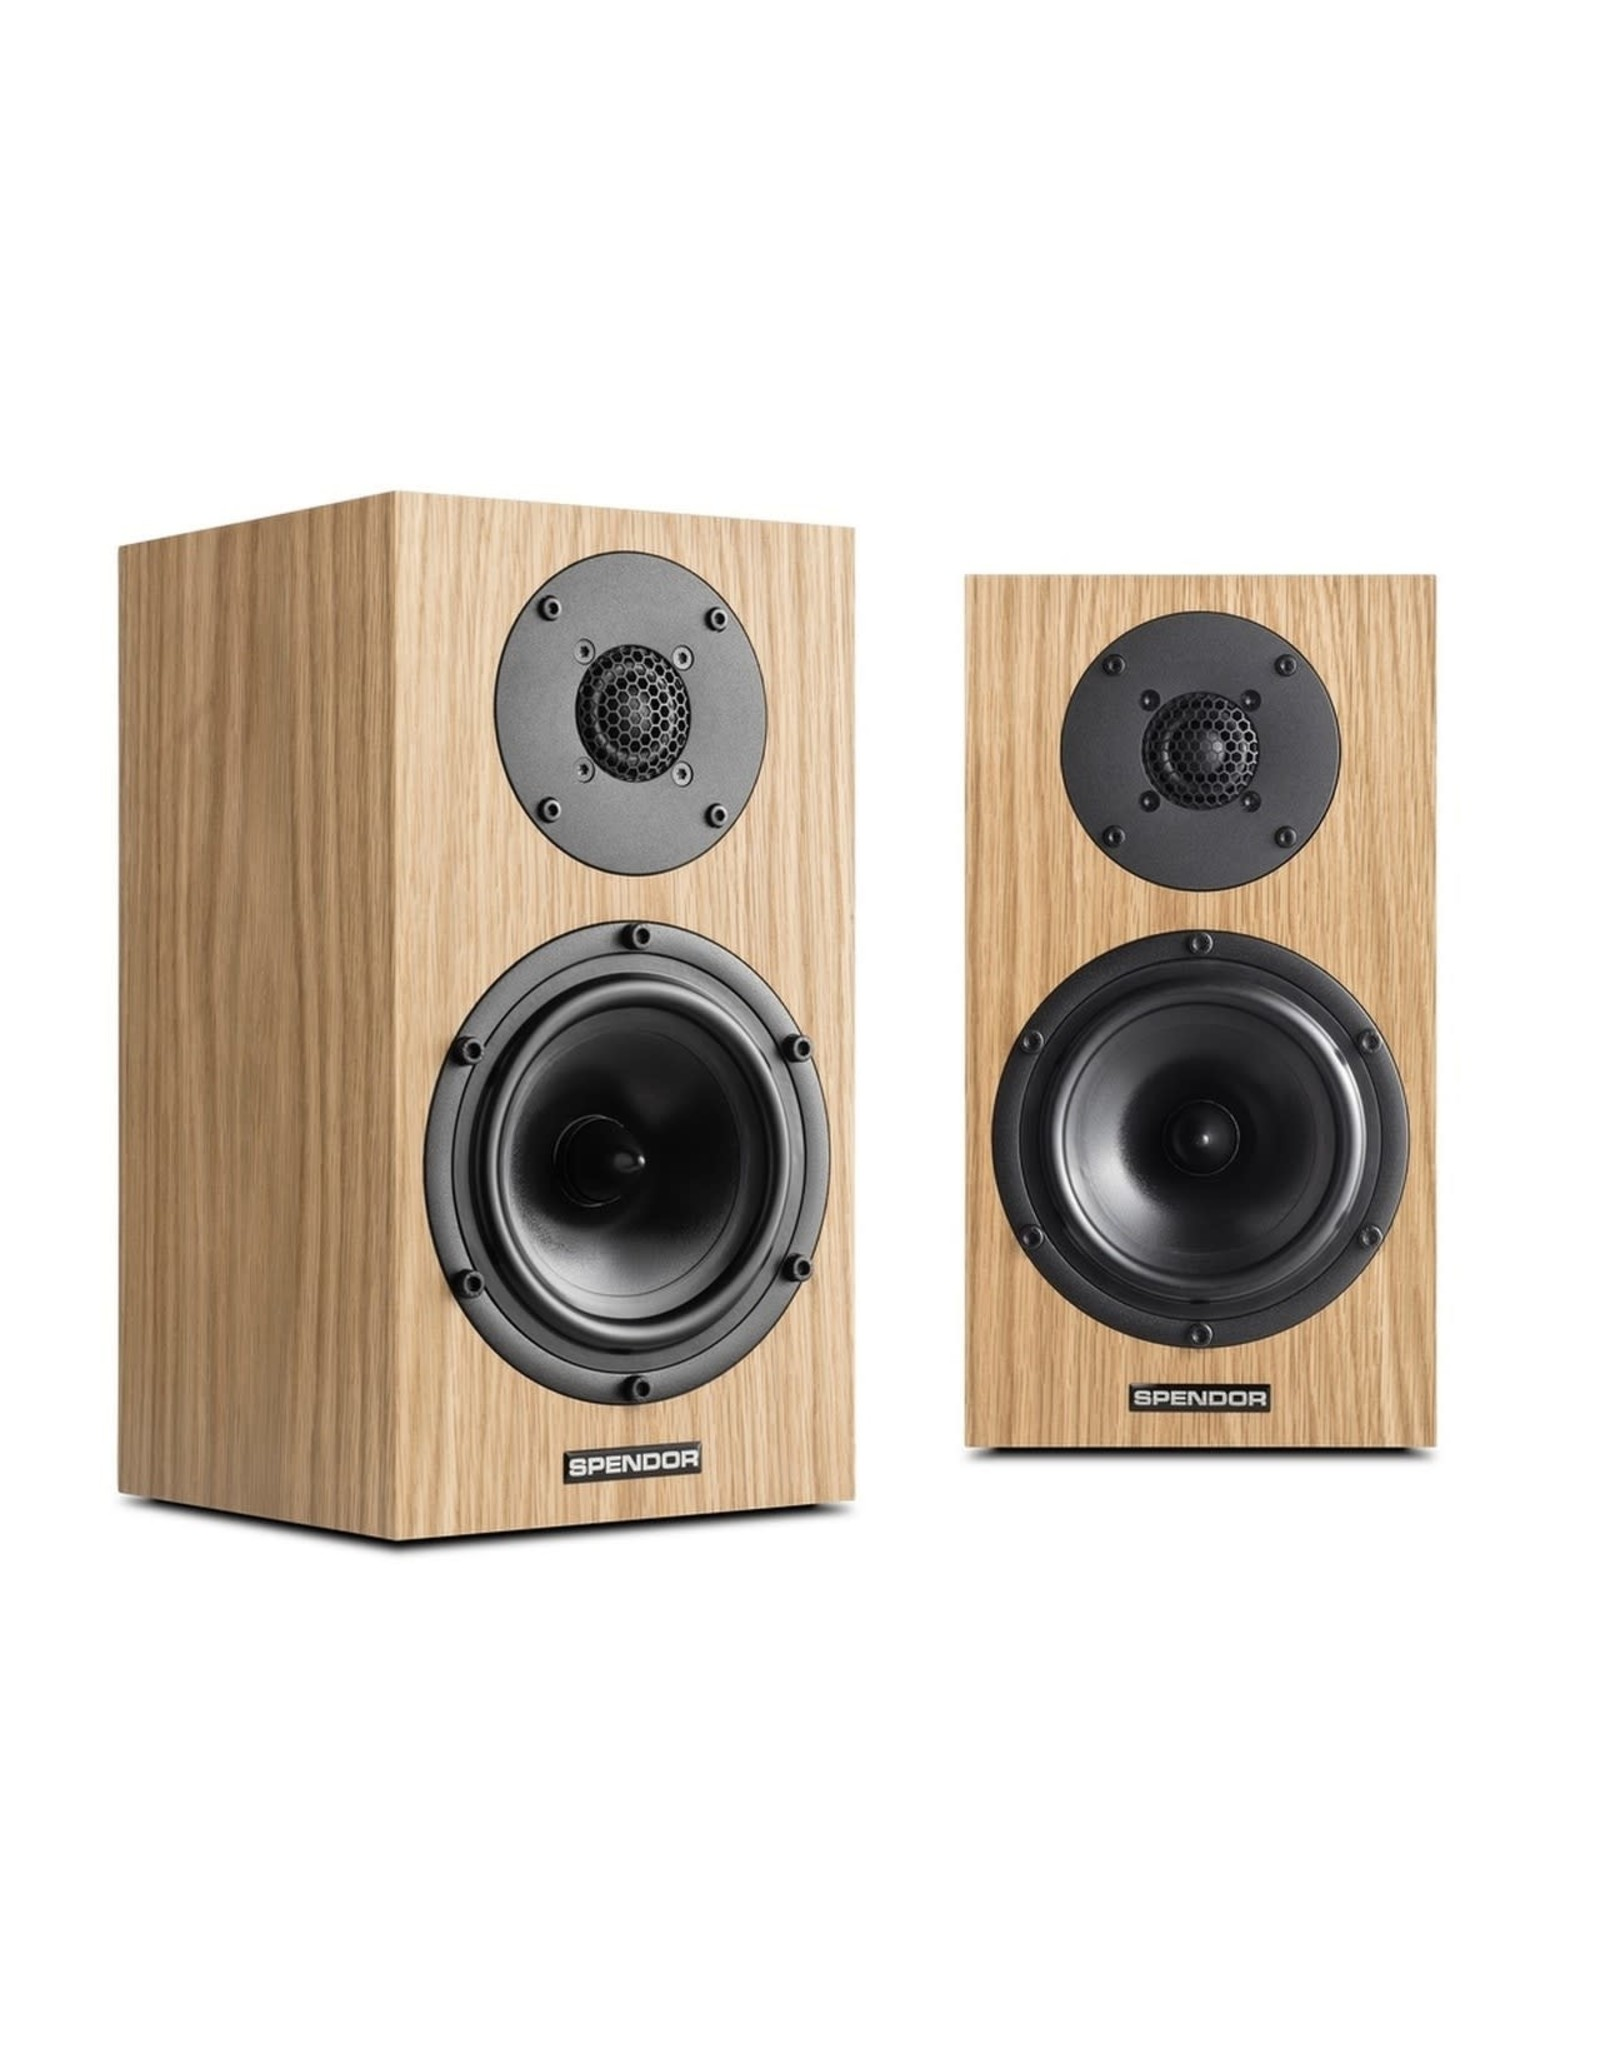 Spendor Spendor A1 Bookshelf Speakers